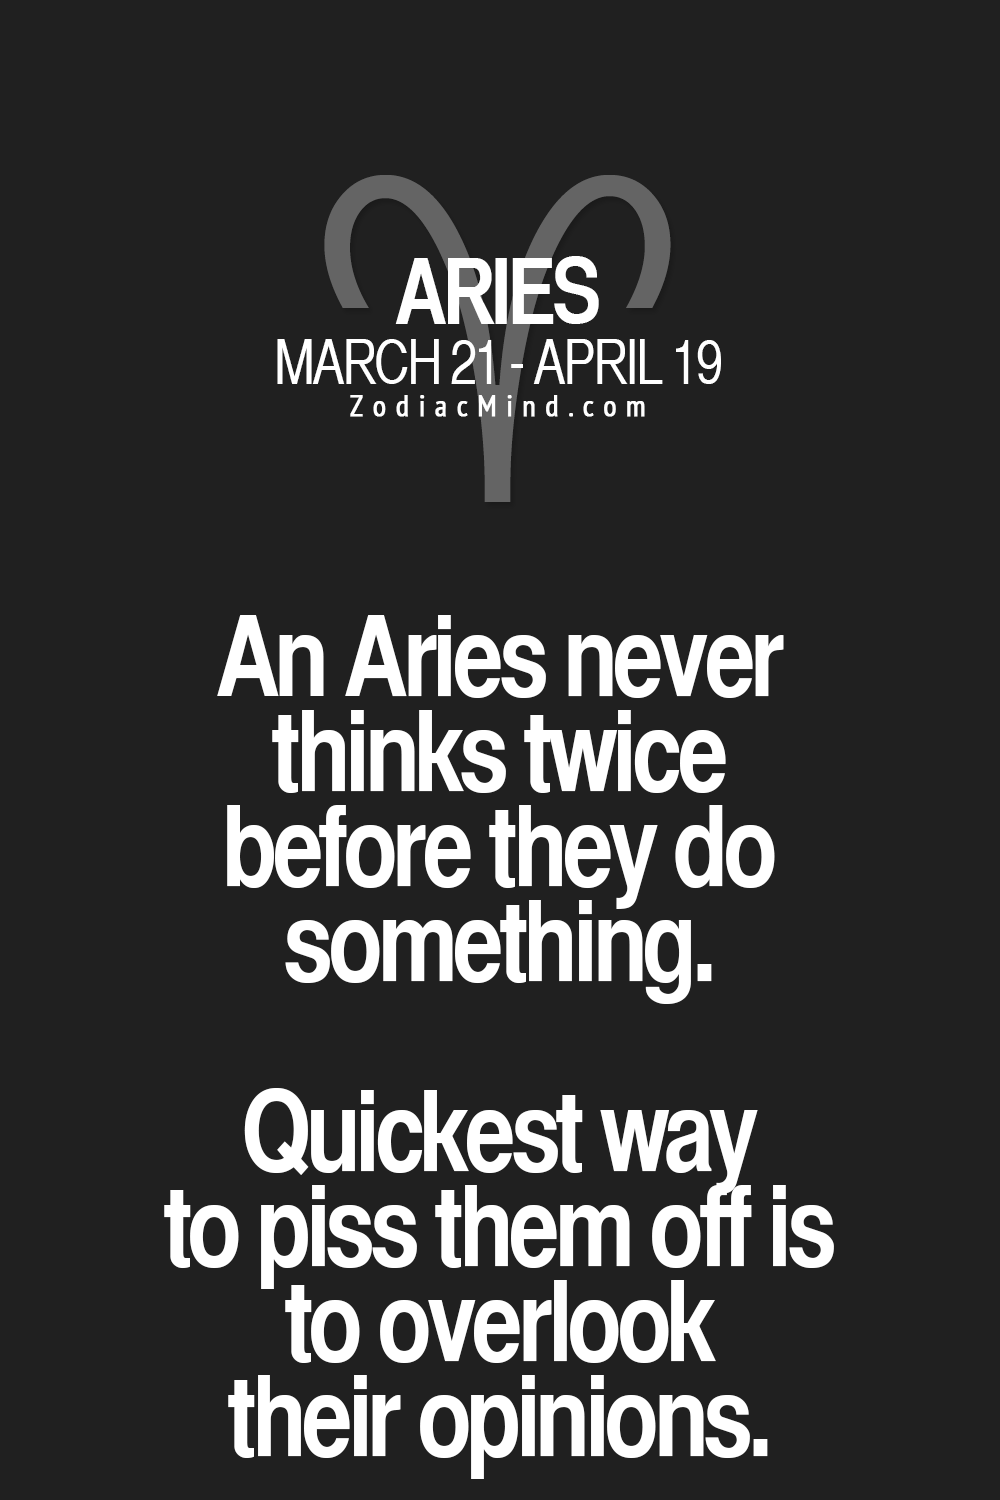 Zodiac Mind - Your #1 source for Zodiac Facts   Aries